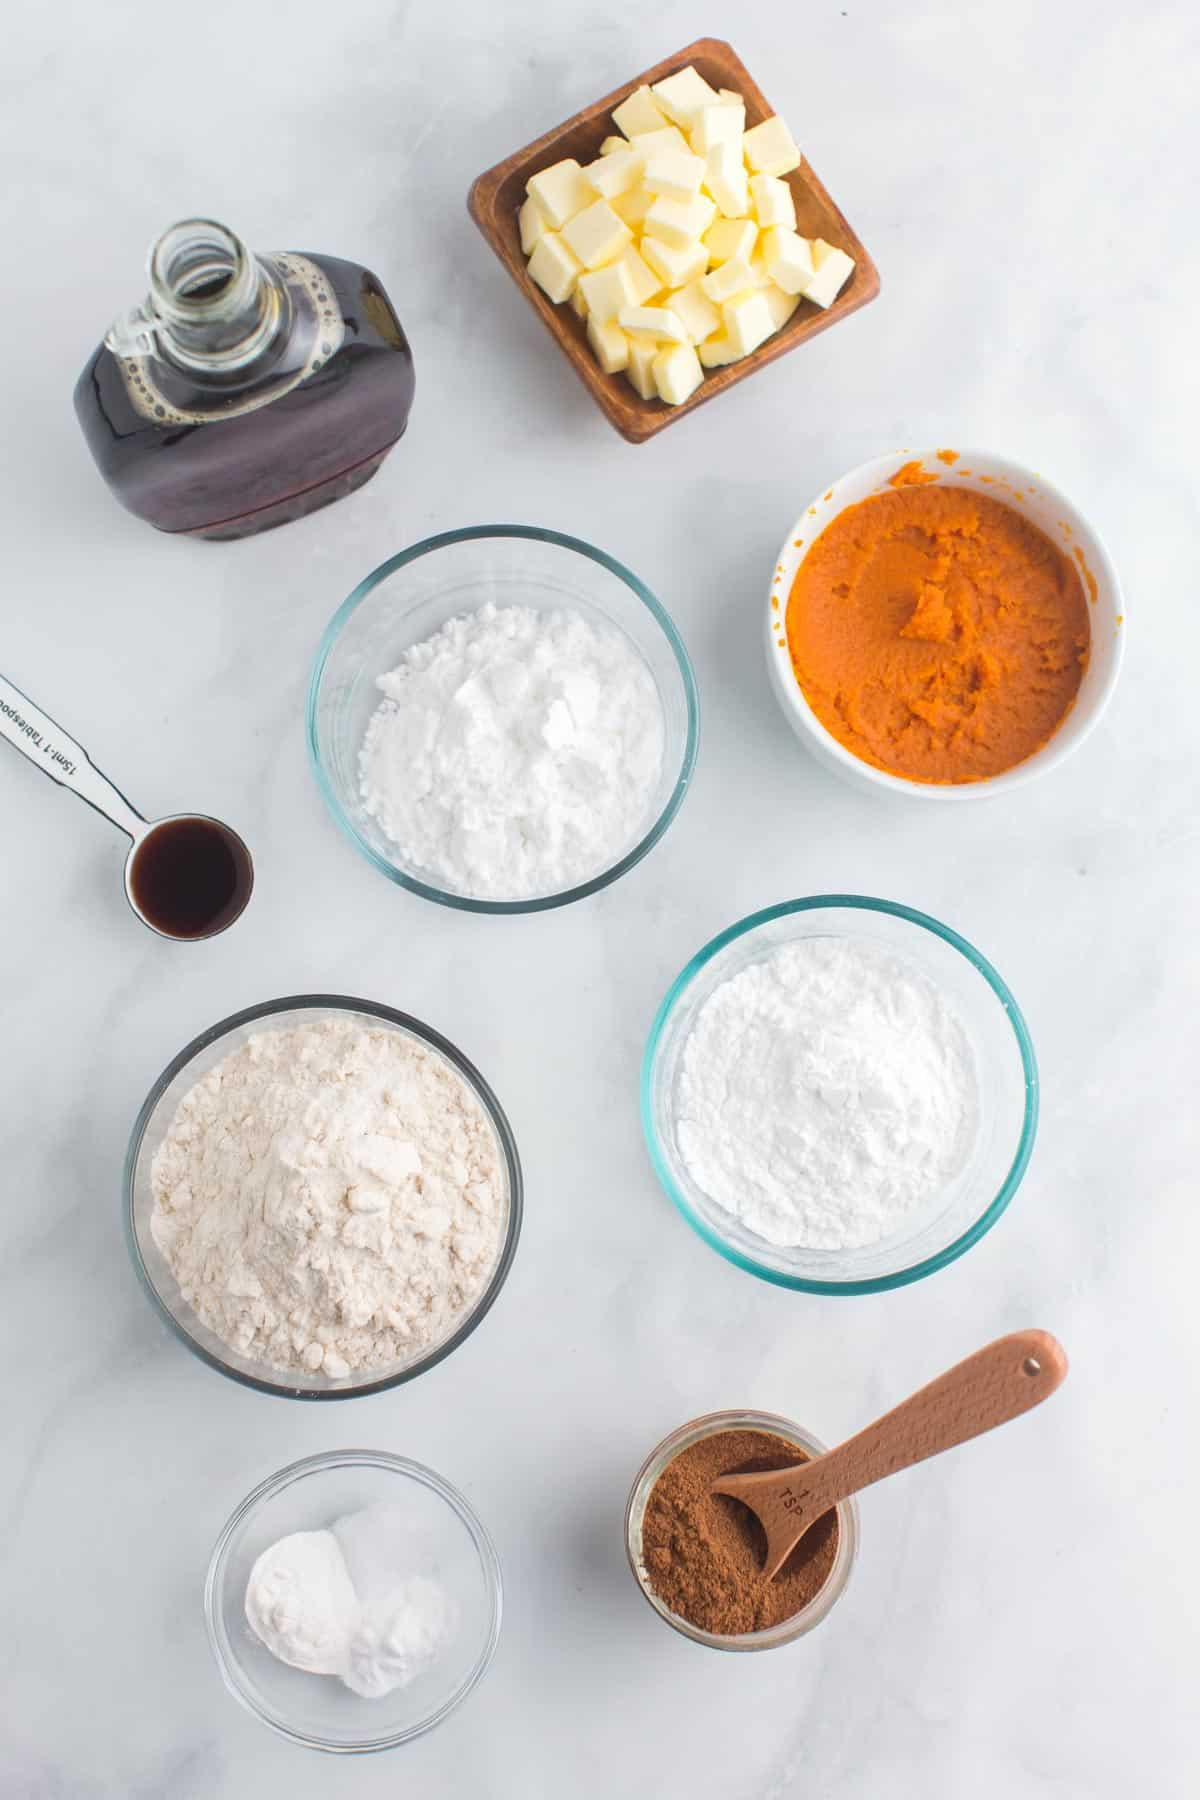 bowls of brown rice flour, tapioca starch, potato starch, salt, baking powder, baking soda, pumpkin puree, pumpkin pie spice, and cubed butter plus a bottle of maple syrup and a measuring spoon of vanilla